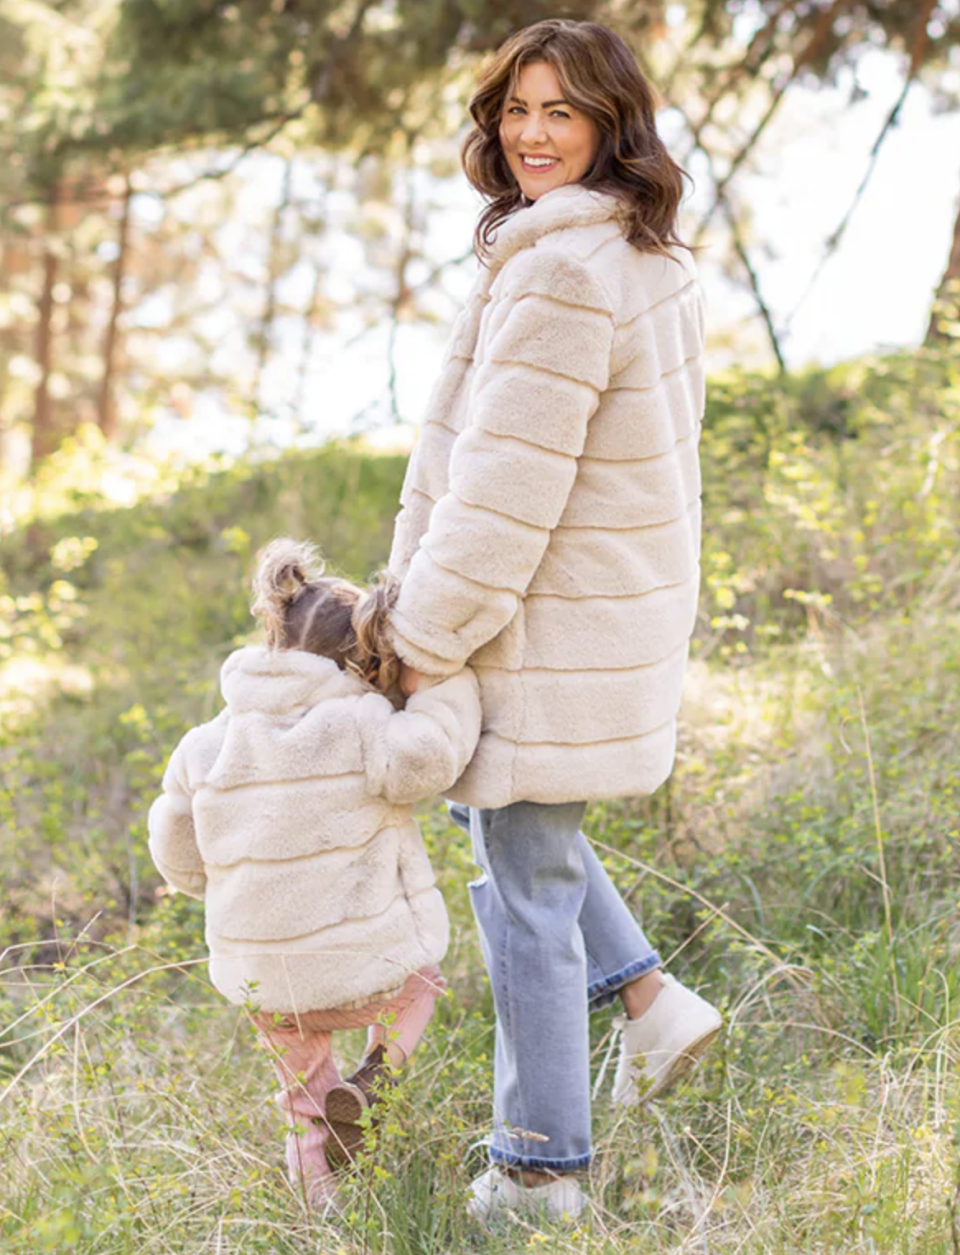 Jillian Harris and her daughter Annie wearing matching Harris Coats outside in grass